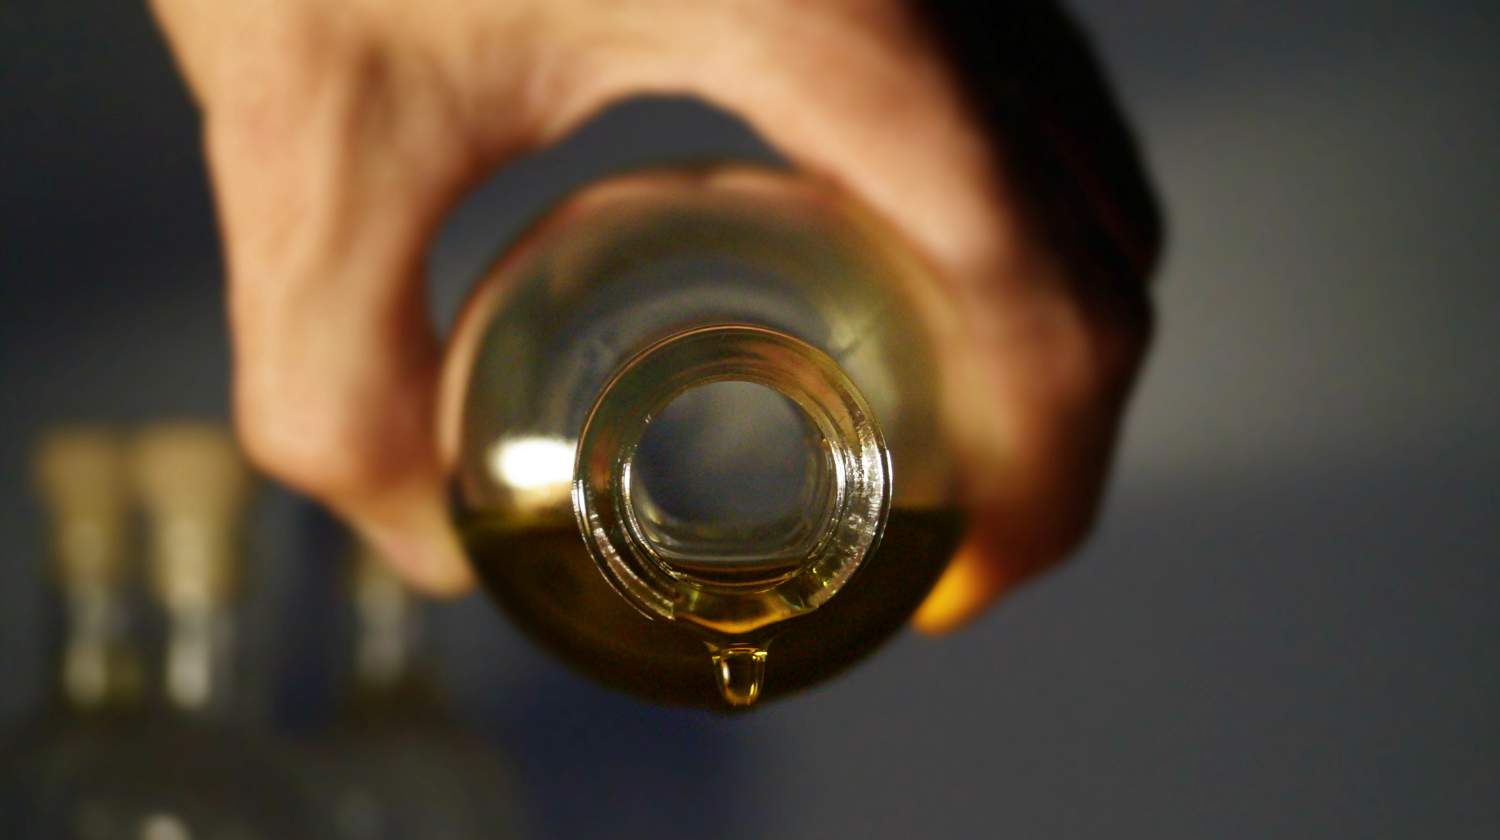 Hand holding a sideways bottle with oil hanging over the side